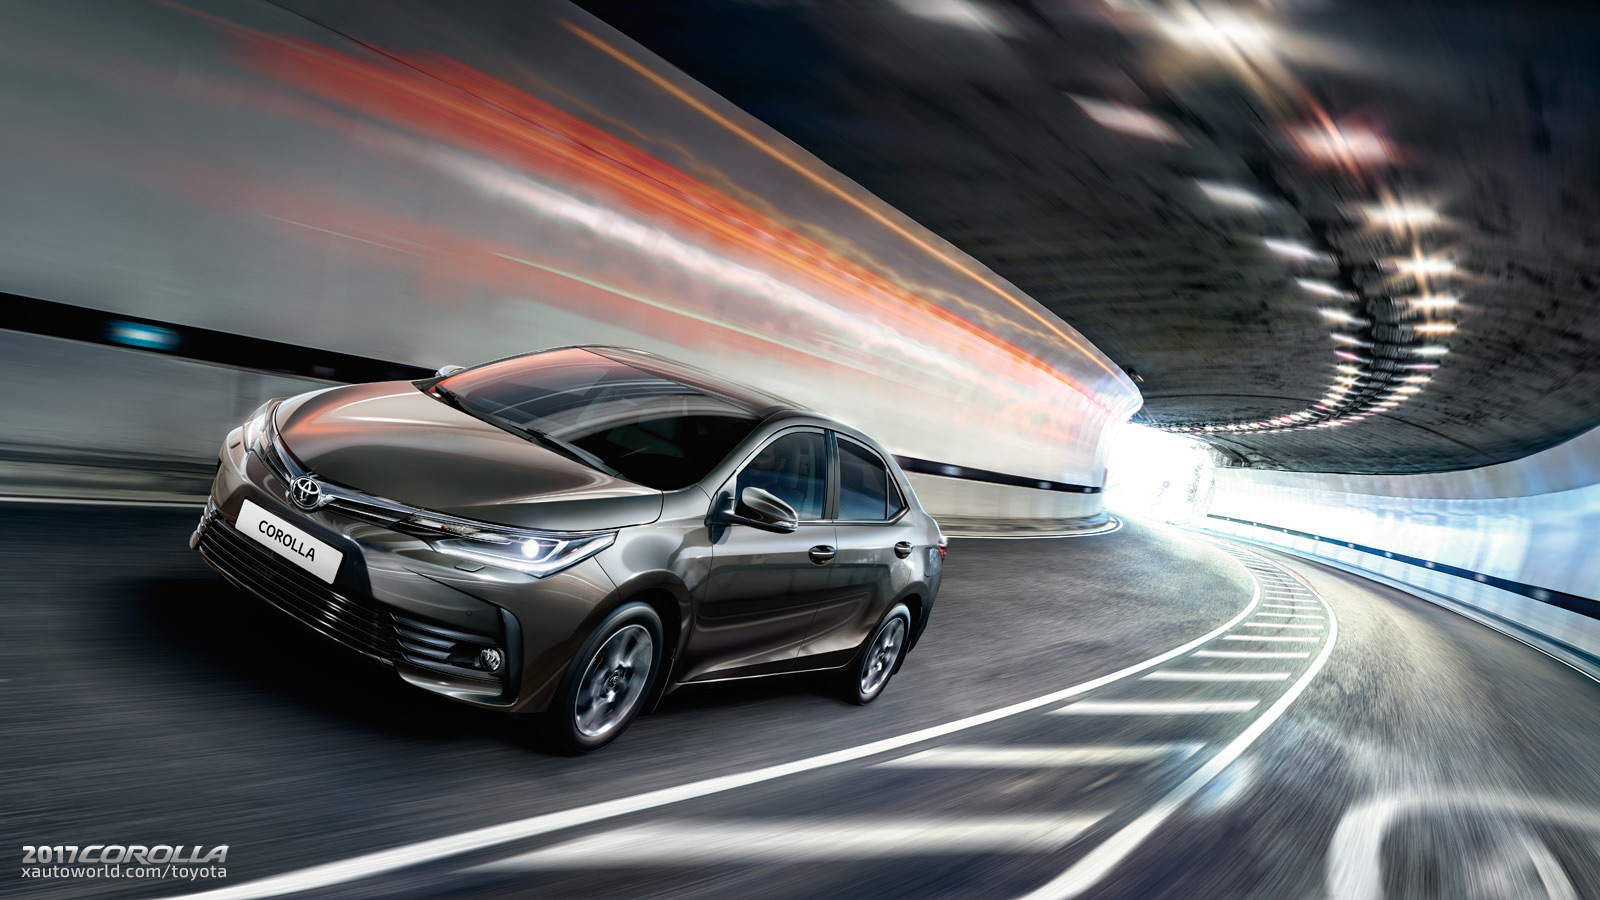 2017 Toyota Corolla First Impressions Of The Intl. Model